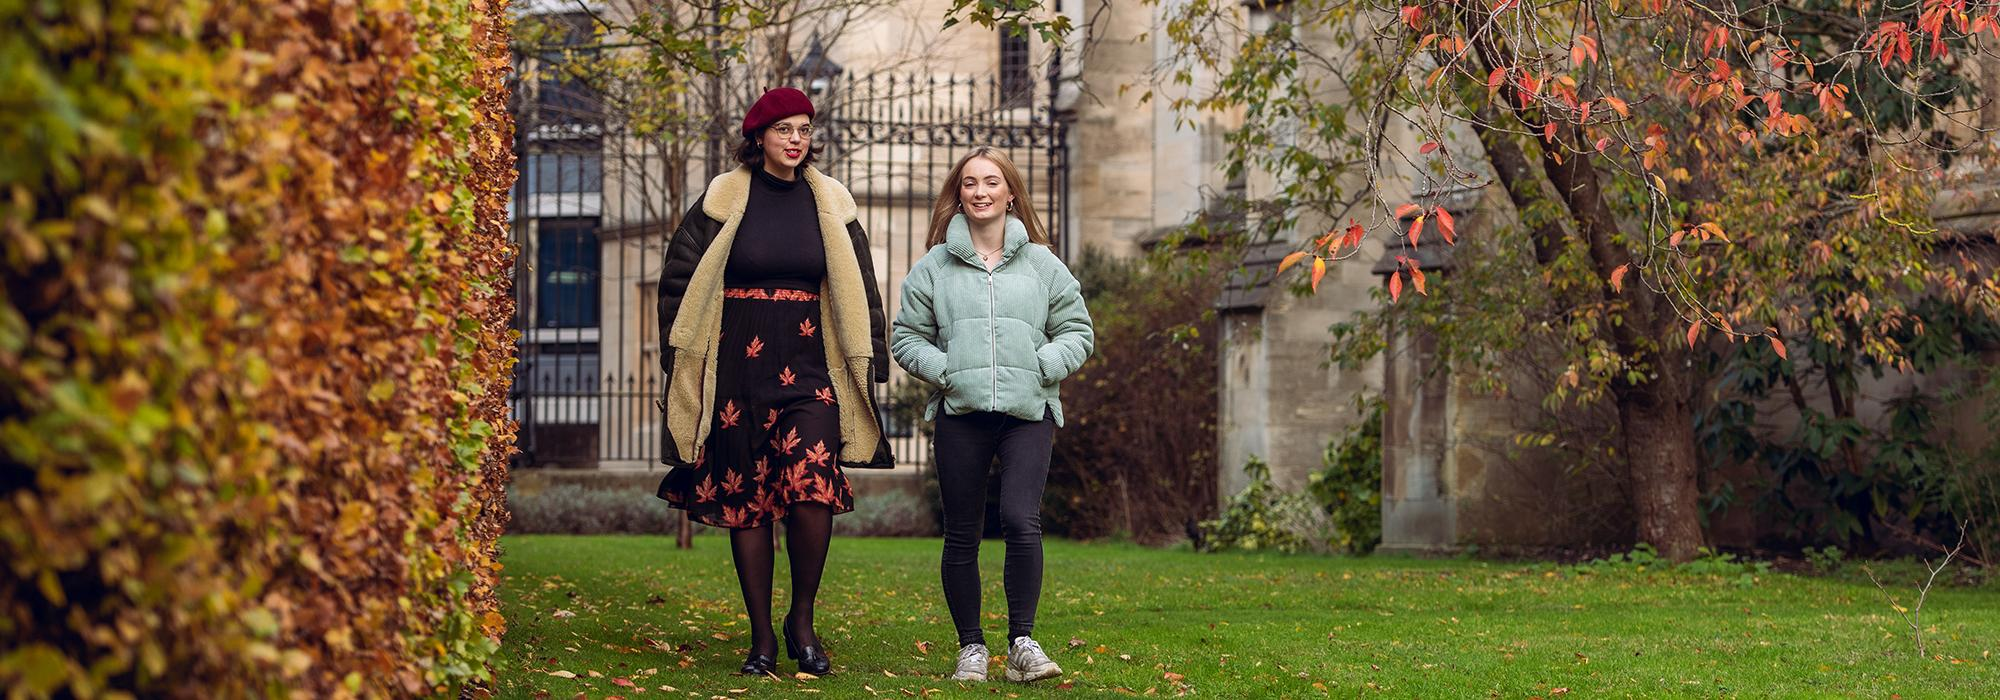 Students in the Chapel garden, 2019 - Photo: © John Cairns - www.johncairns.co.uk